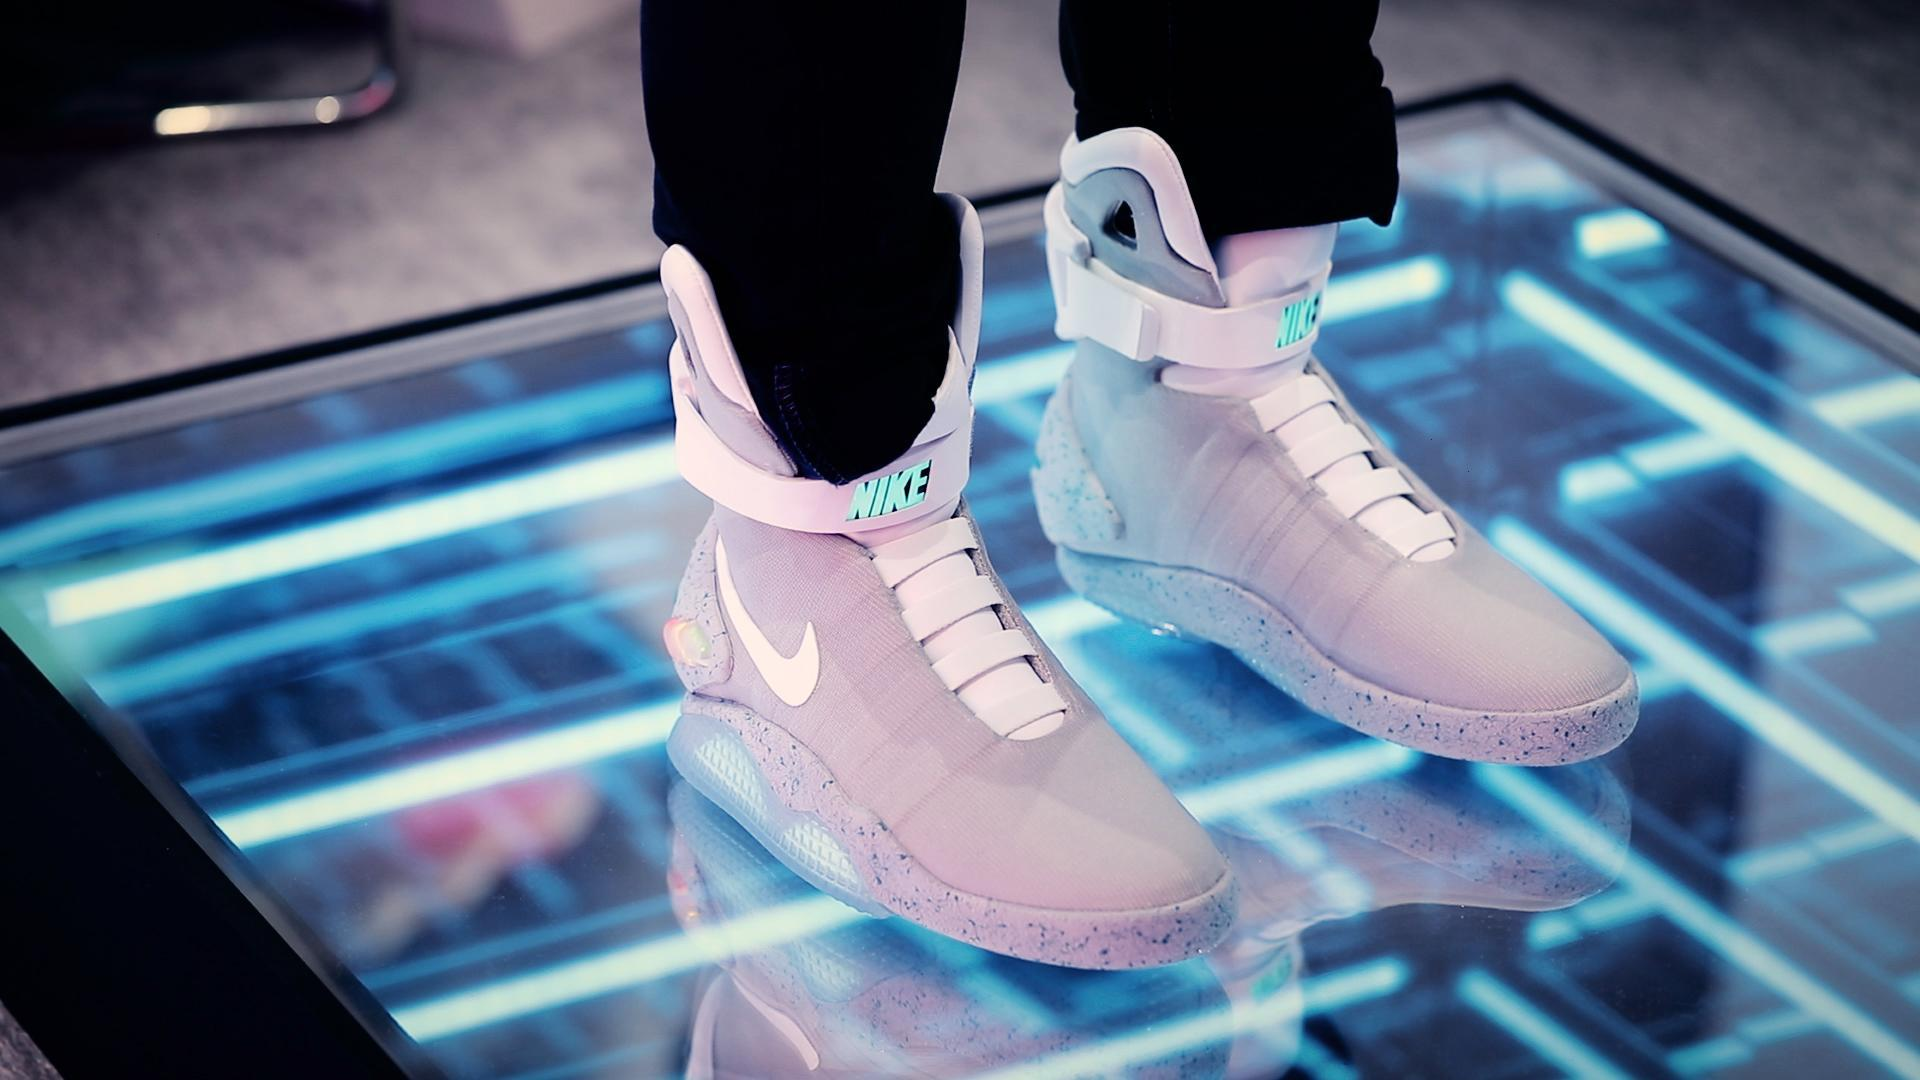 Nike shows off its new self-lacing Mags